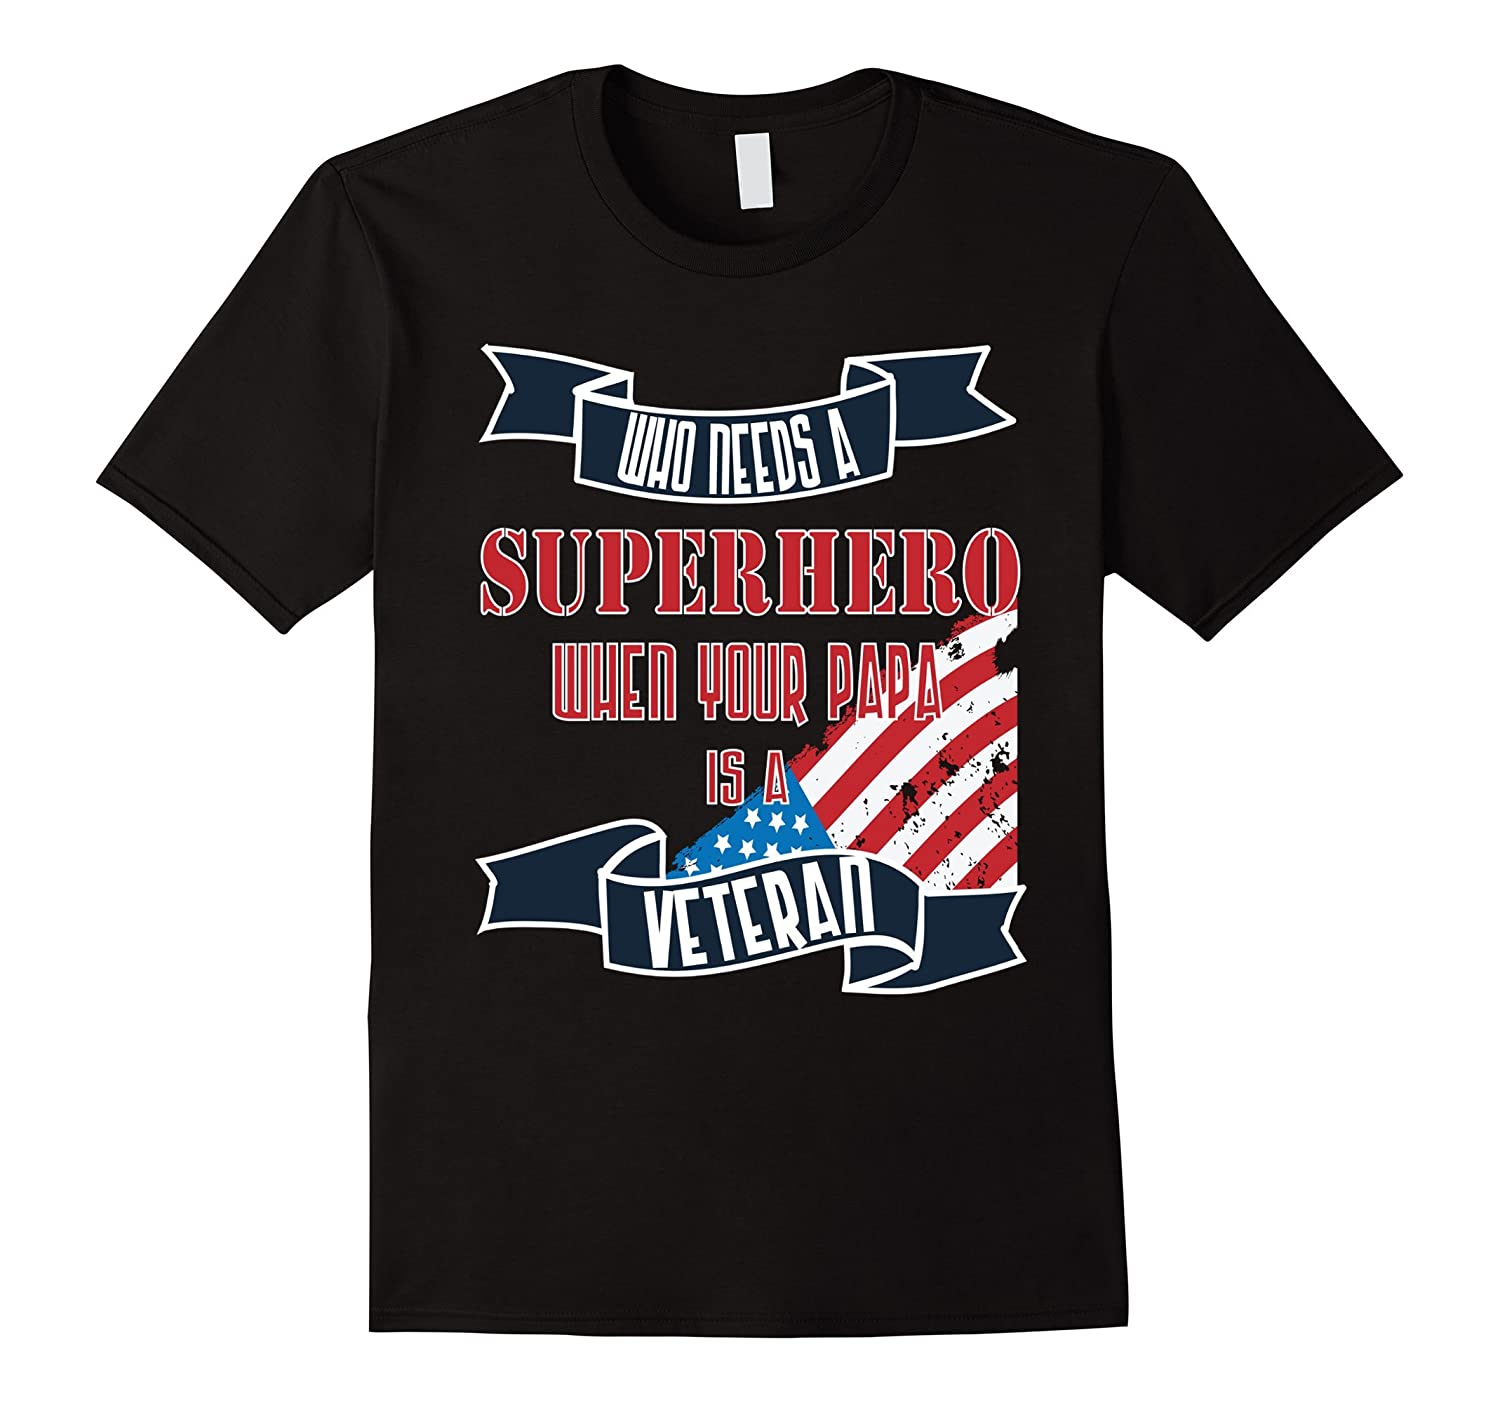 Veteran Papa T-shirt - Who needs a superhero when your papa-TH